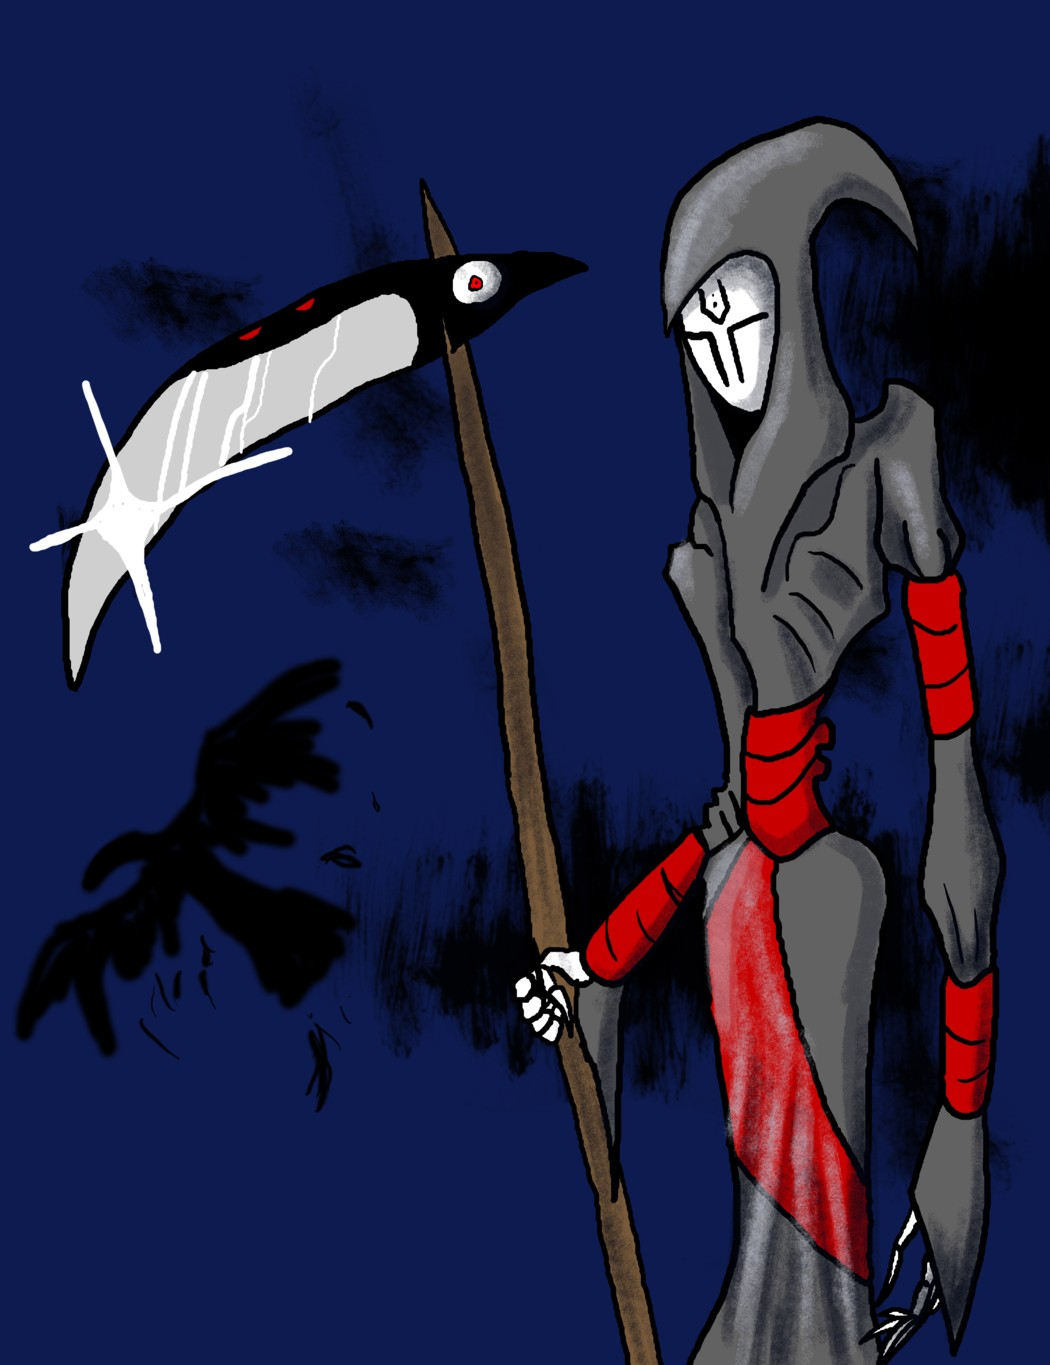 The Grim Reaper by TheGameArtCritic